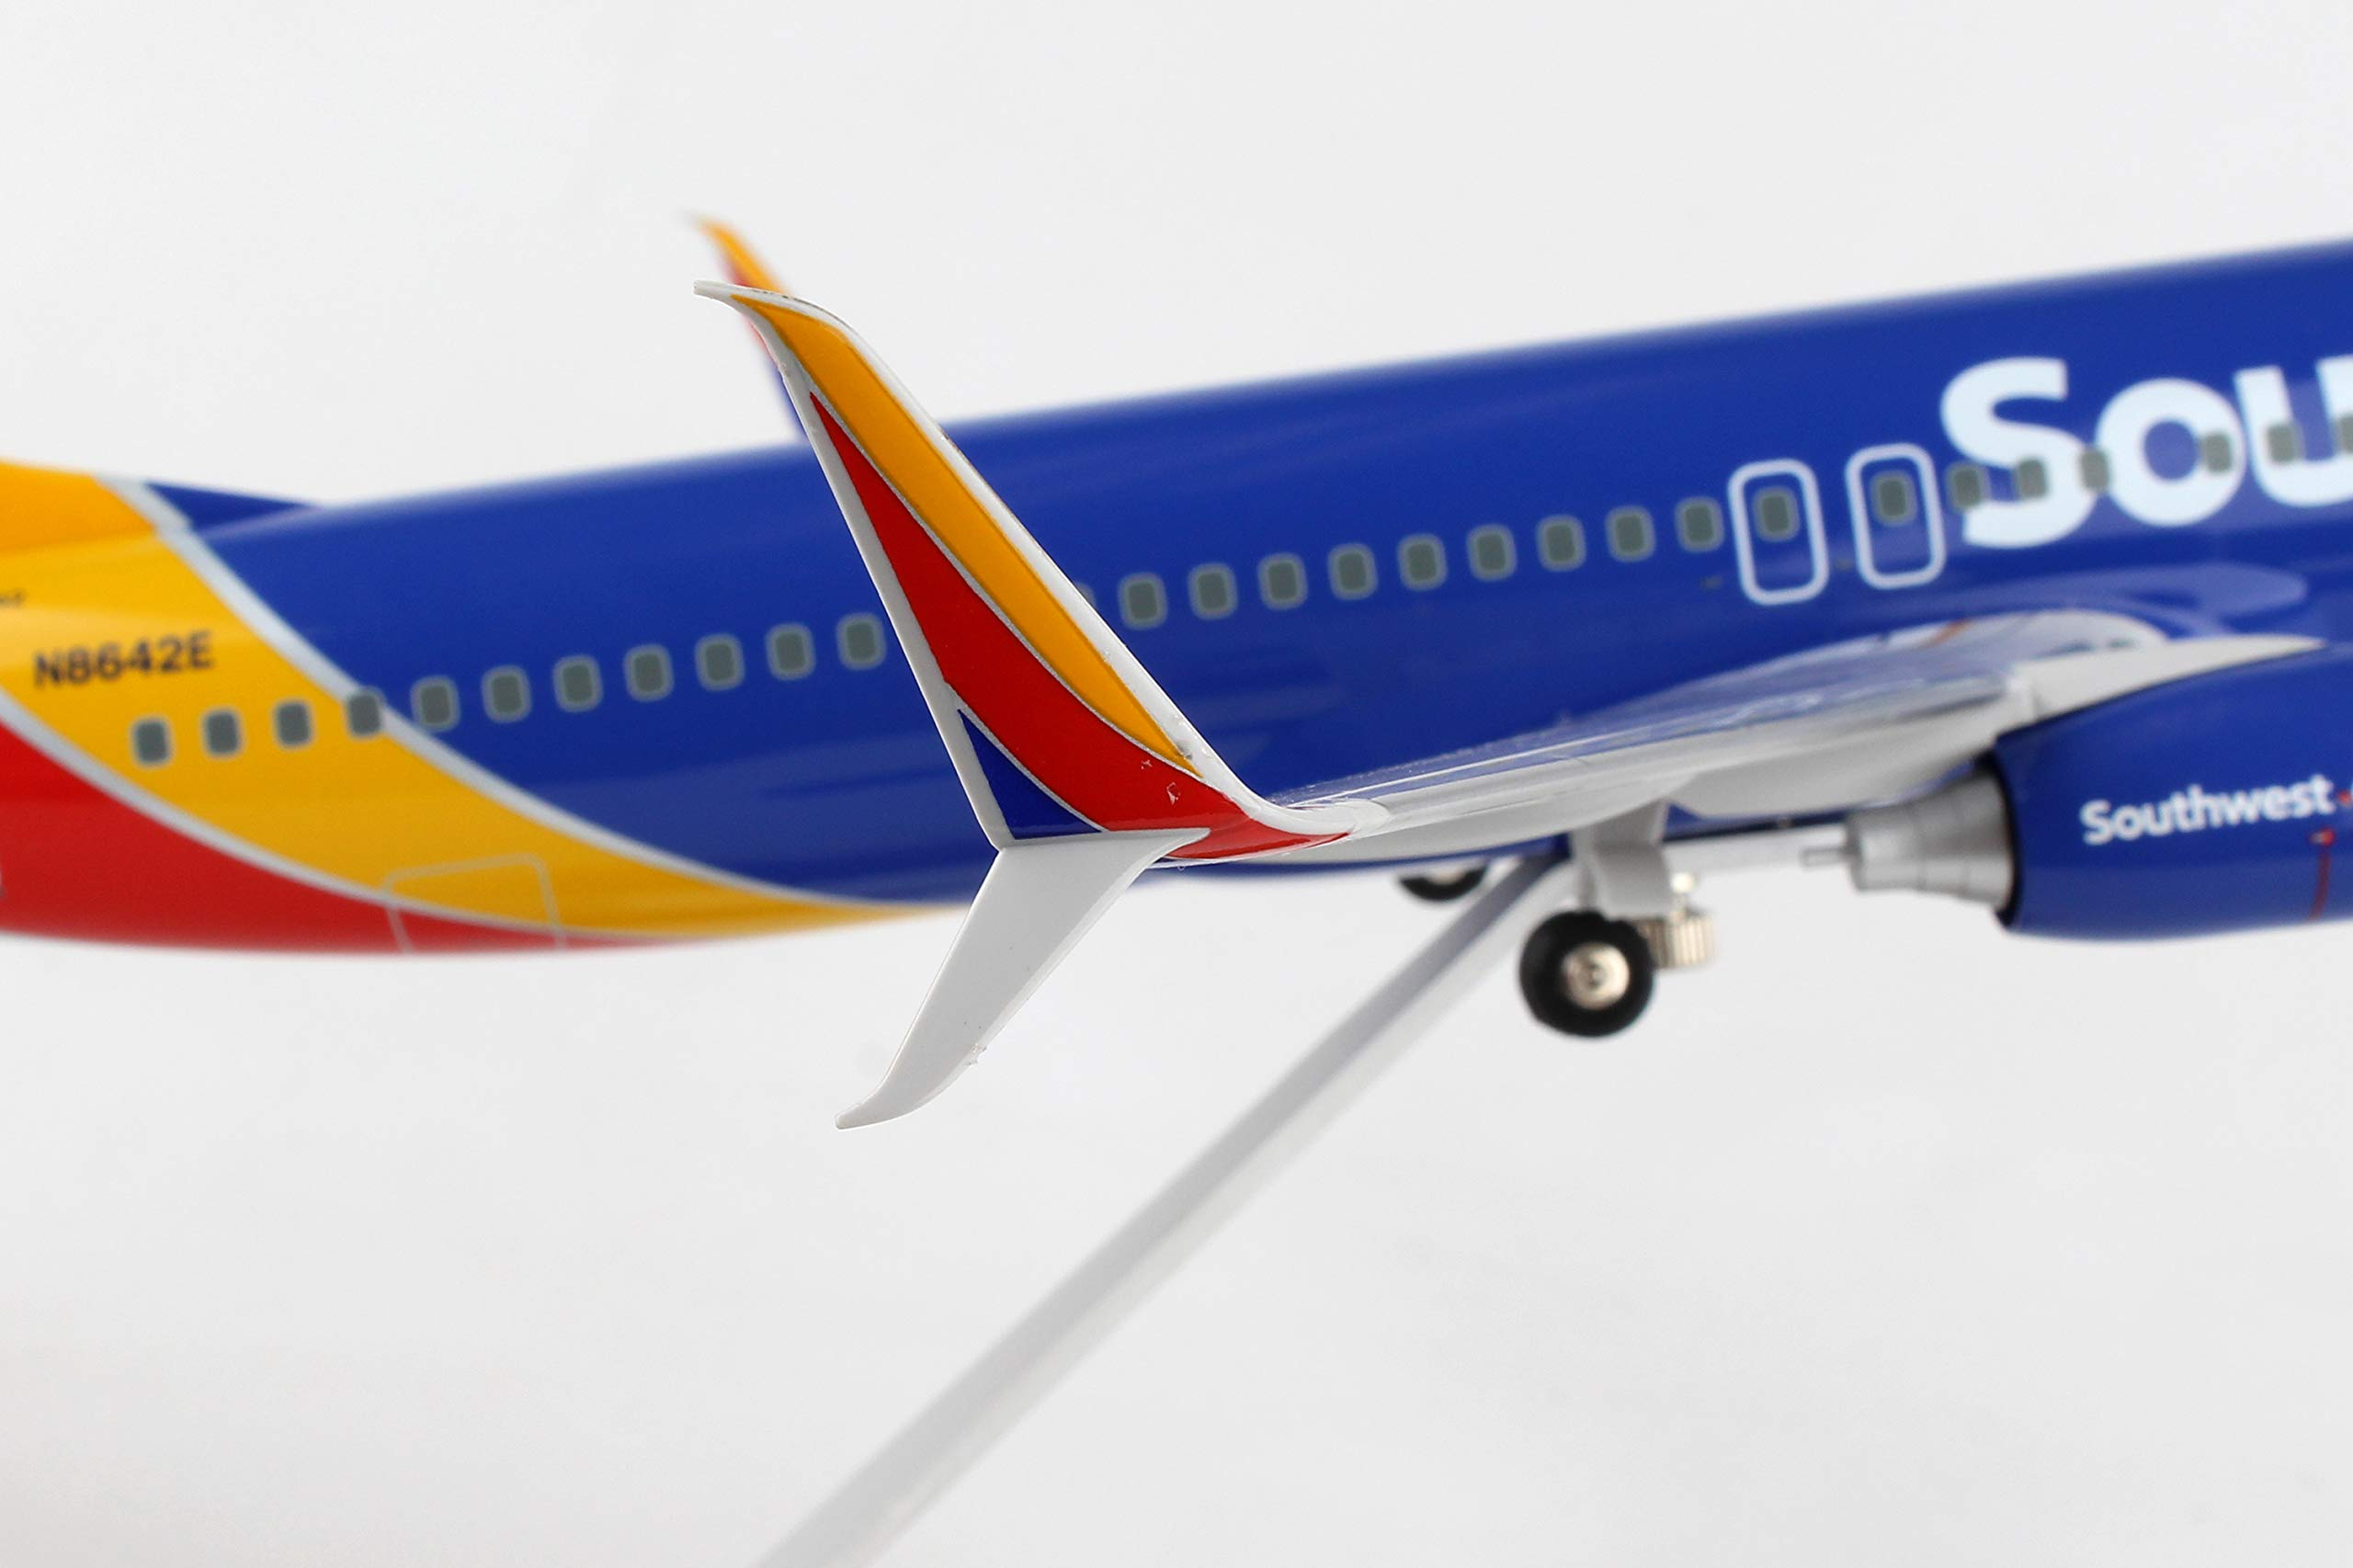 Daron 737-800 Skymarks Southwest Airplane Model with Gear & Wood Stand Heart (1/100 Scale) by Daron (Image #6)